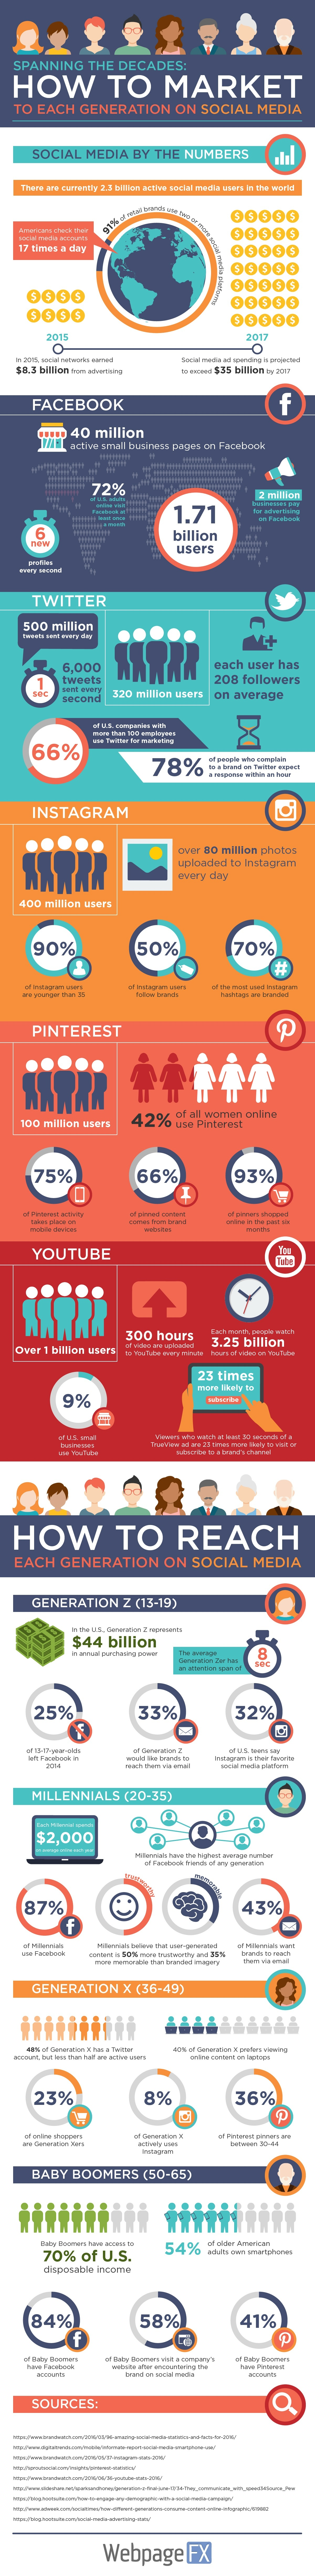 Marketing to Generations Infographic